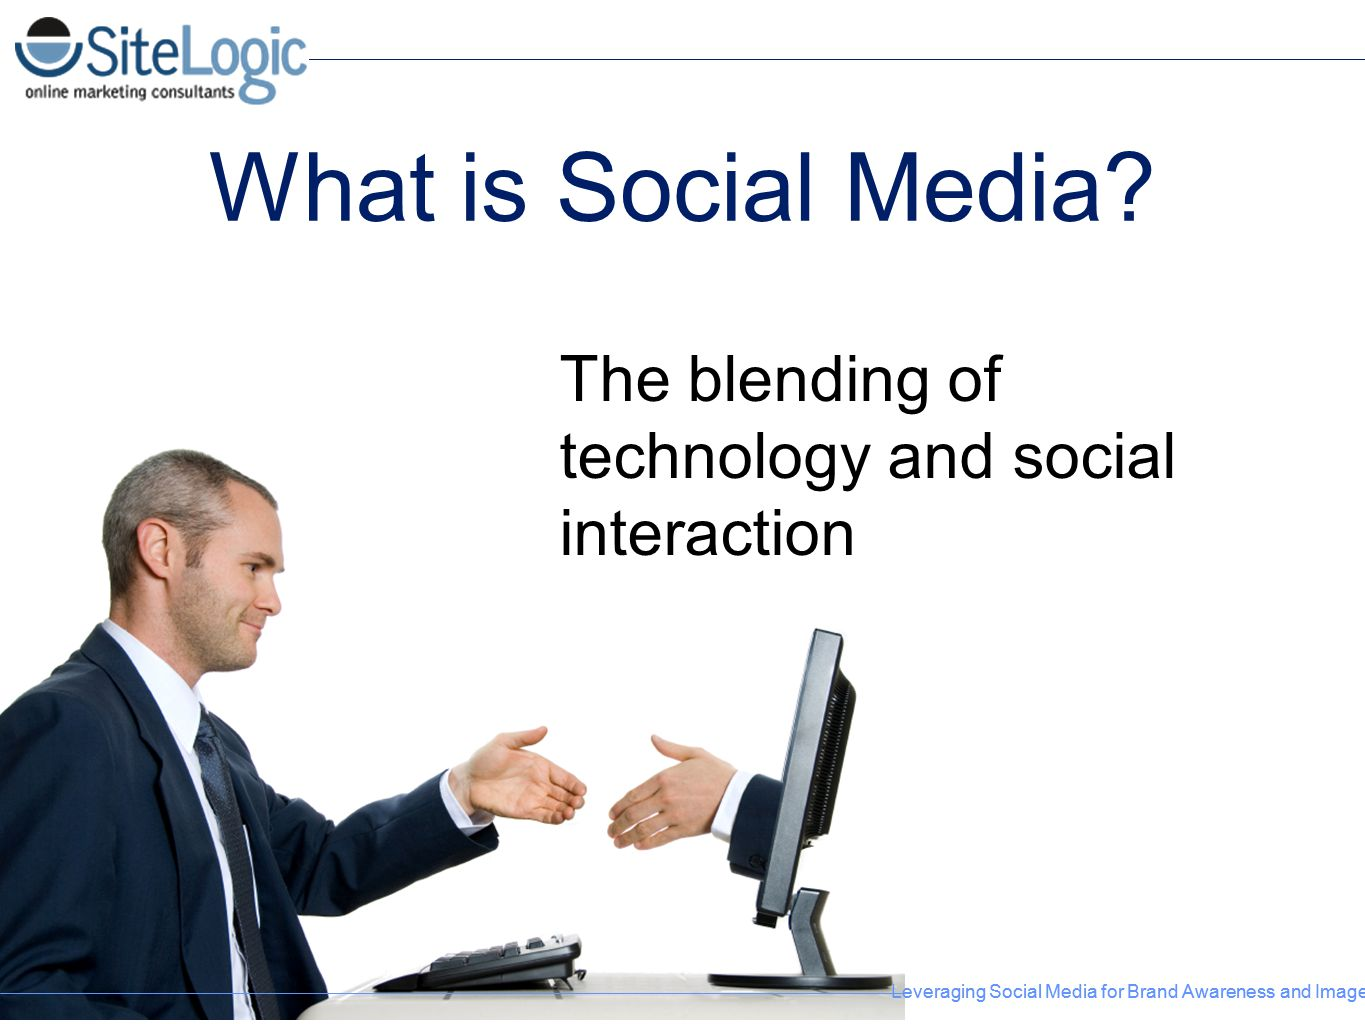 Leveraging Social Media for Brand Awareness and Image